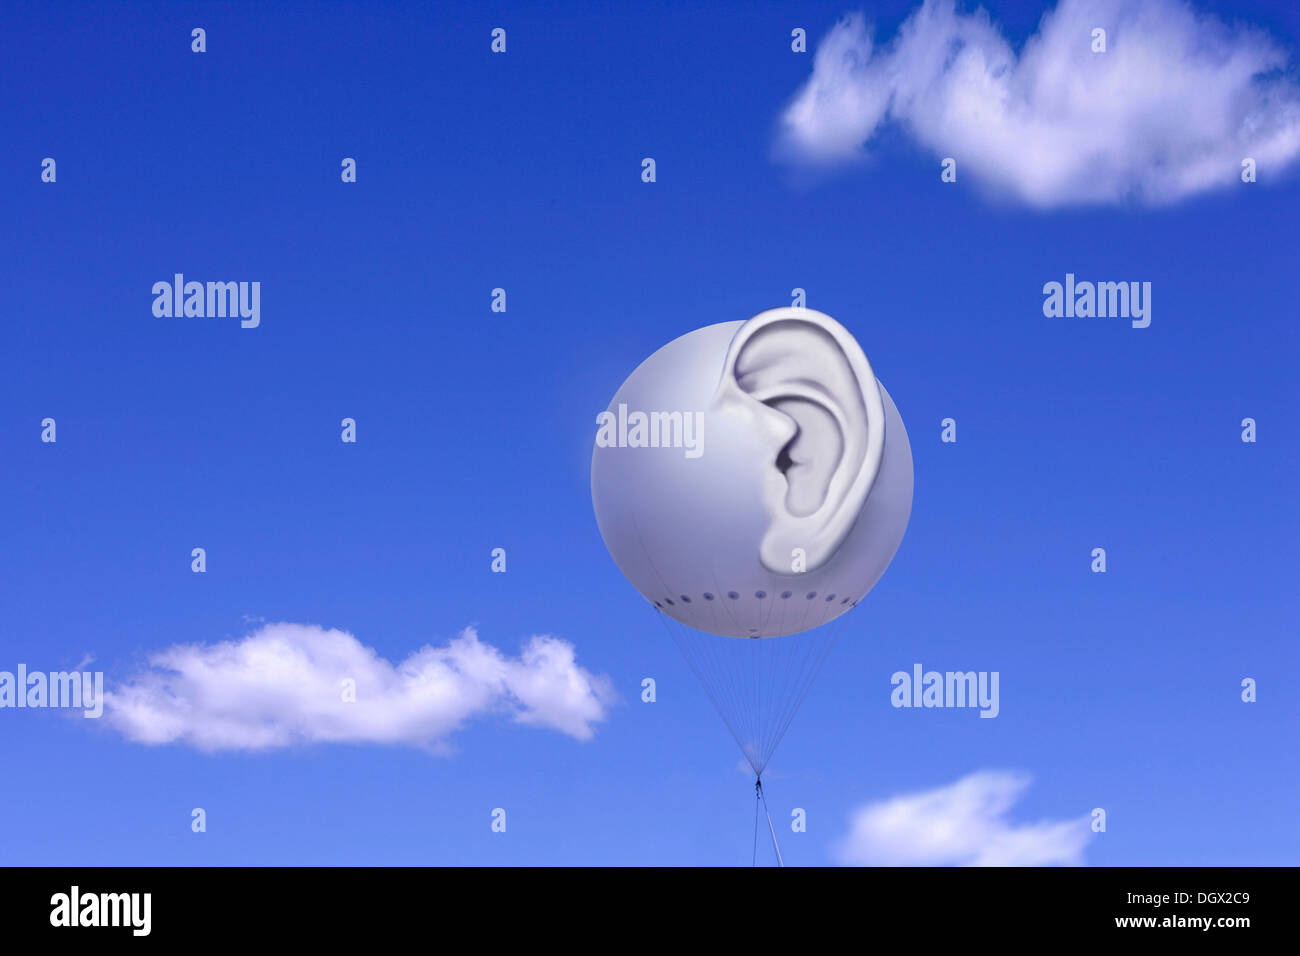 Tethered balloon with a three-dimensional human ear against a blue sky with white clouds, symbolic image for bugging or spying - Stock Image